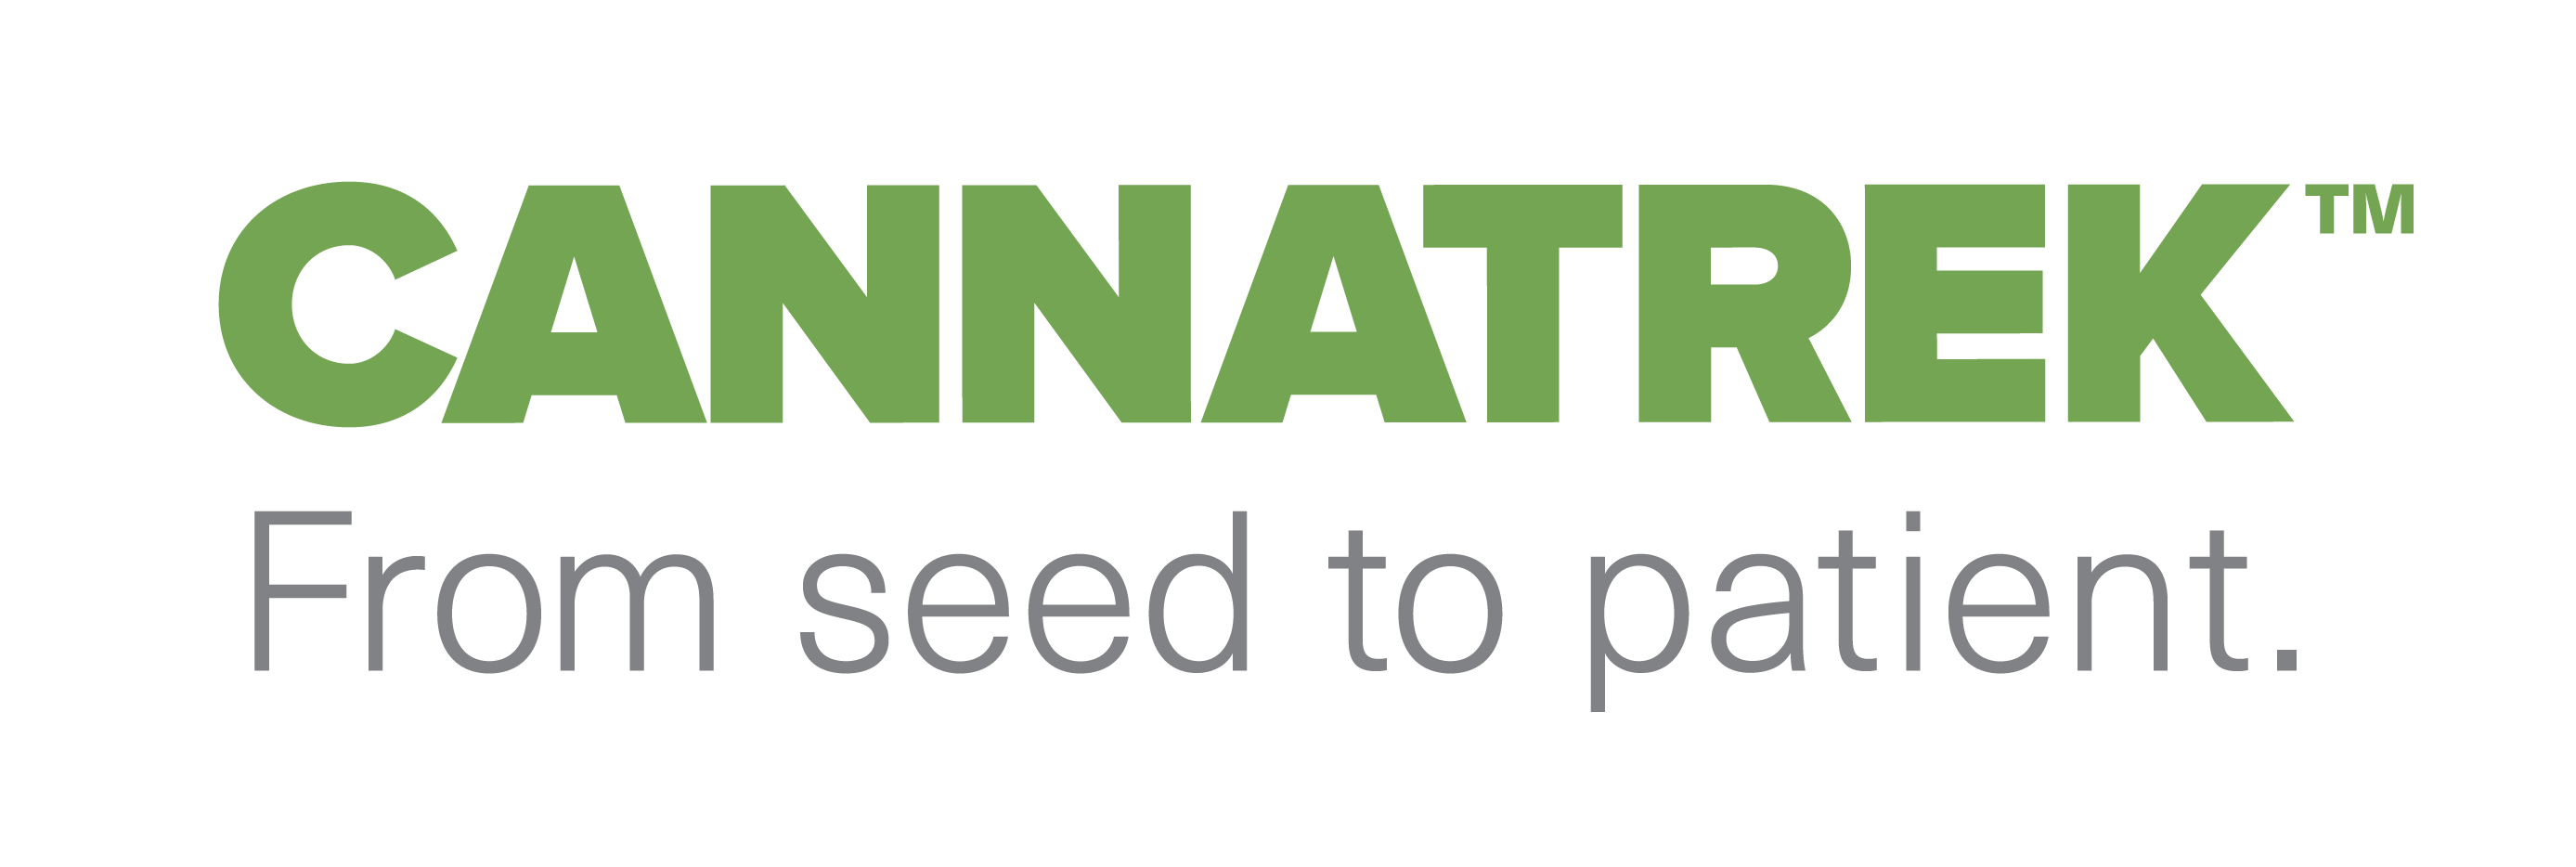 Cannatrek Logo - big